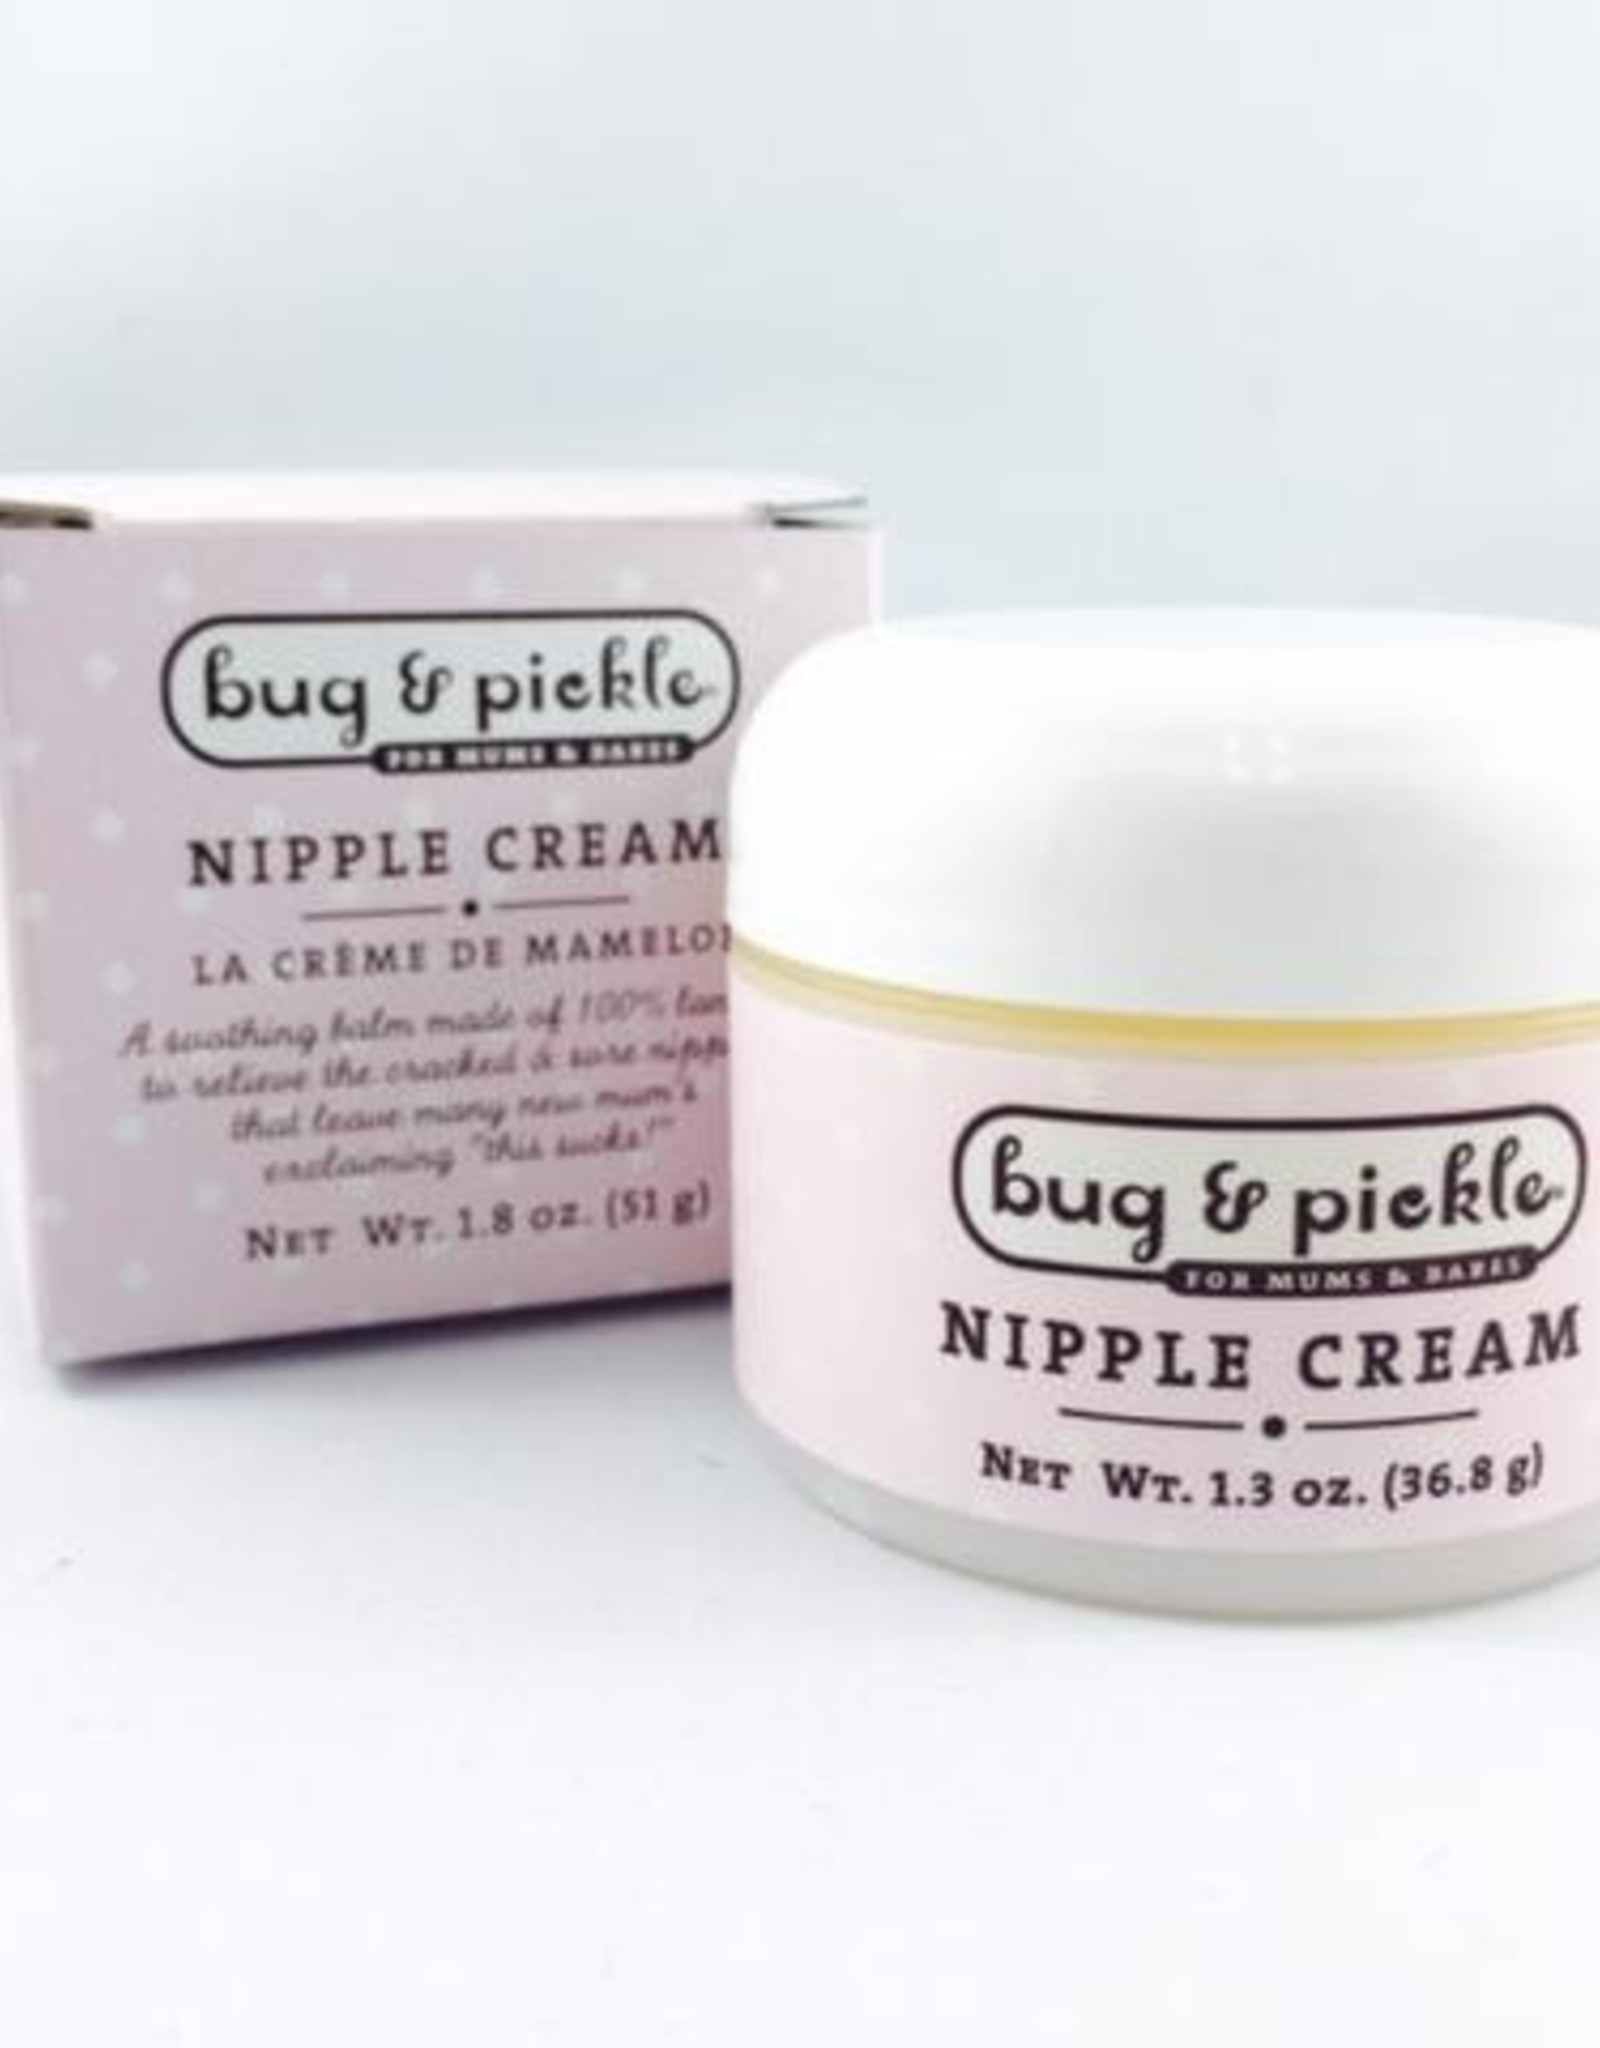 Bug & Pickle B&P NIPPLE CREAM